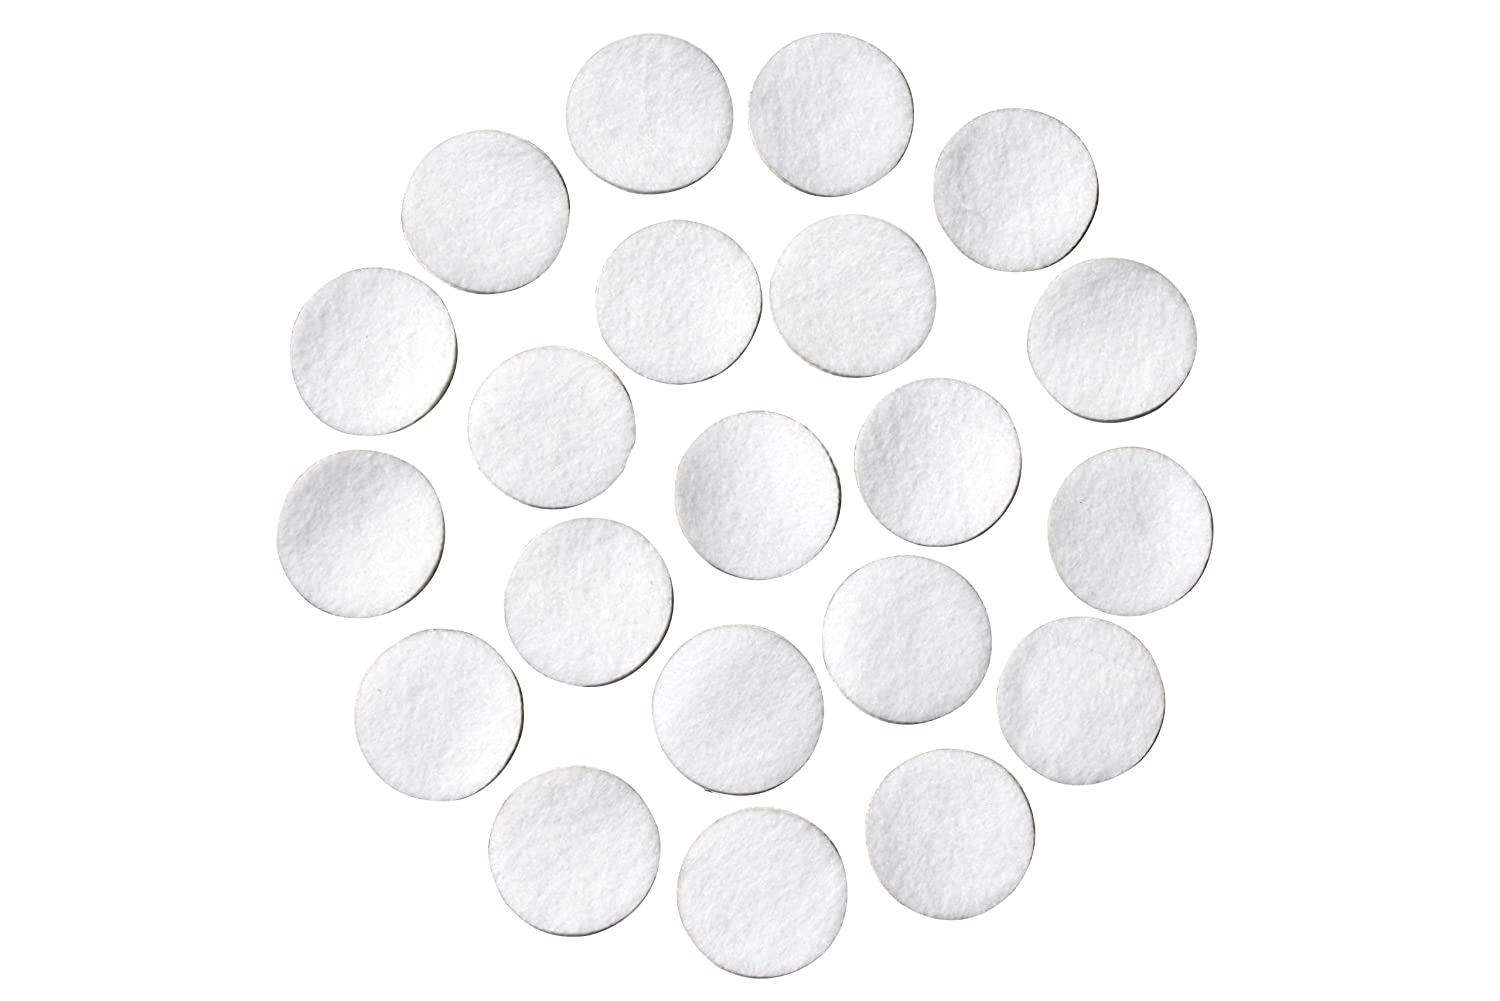 White Adhesive Felt Circles; Package of 48 or 240 Wholesale, 1.5